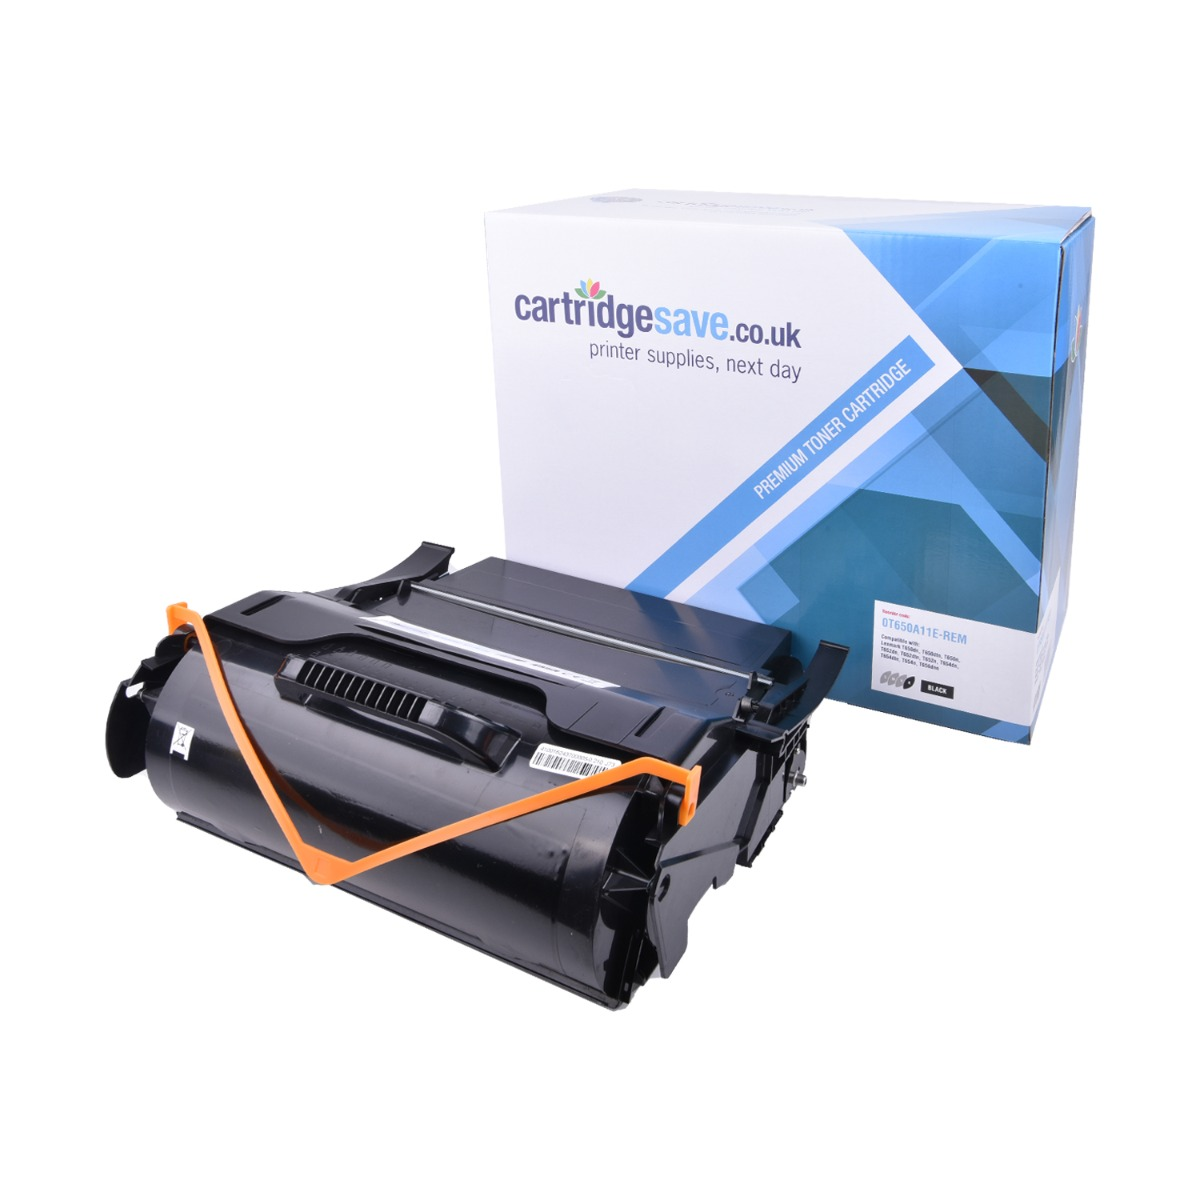 Compatible T650A11E Black Lexmark Toner Cartridge (Lexmark 0T650A11E Laser Printer Cartridge)